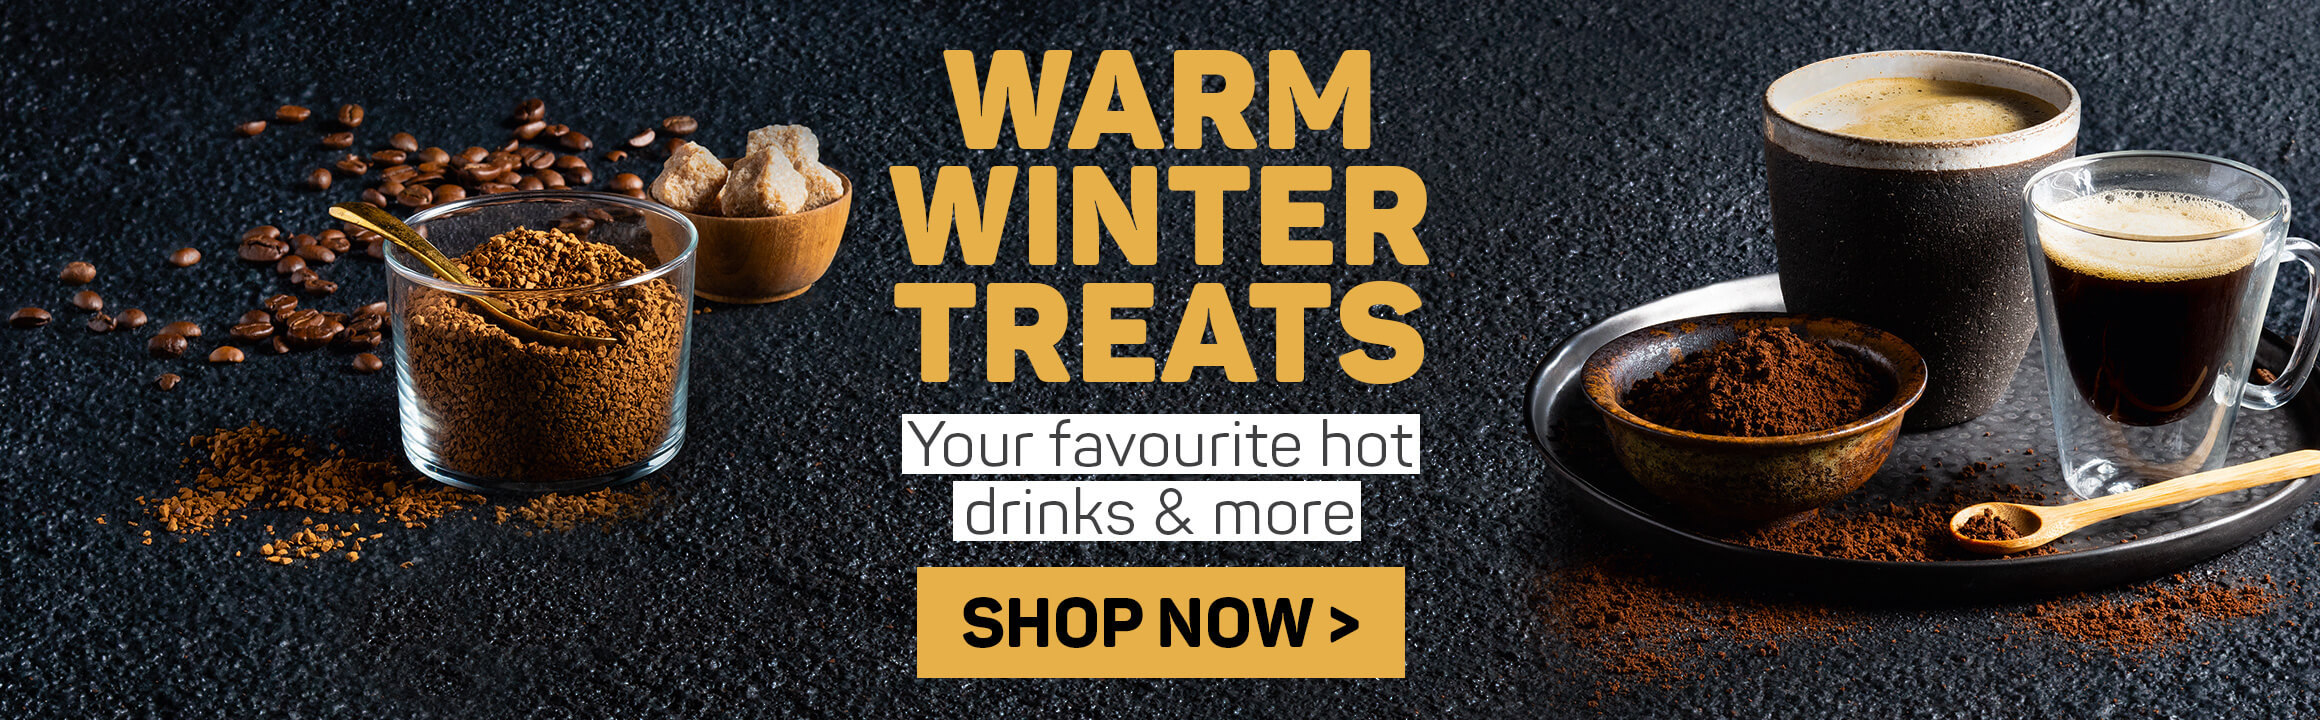 Warm winter treats. Shop now